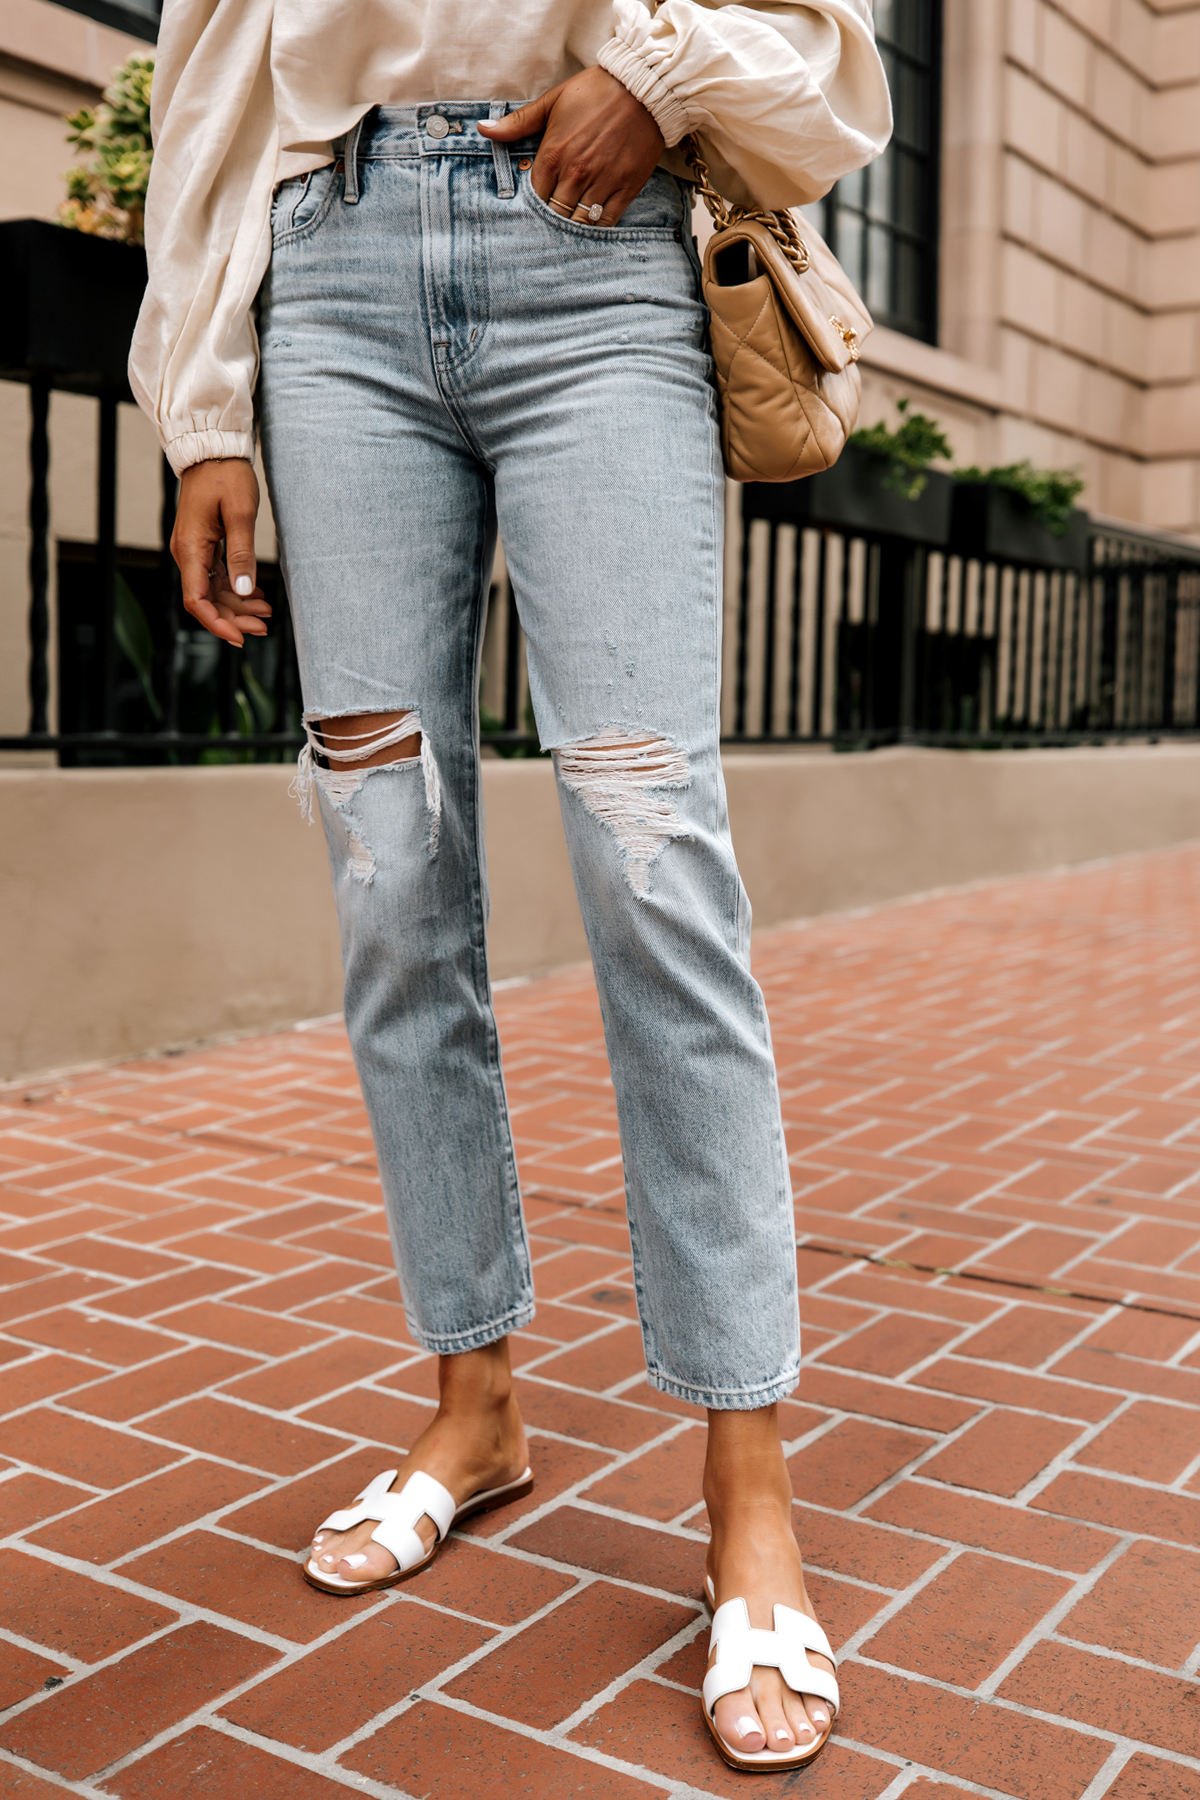 Fashion Jackson Wearing Madewell The Perfect Vintage Jean in Calabria Wash Ripped White Hermes Sandals